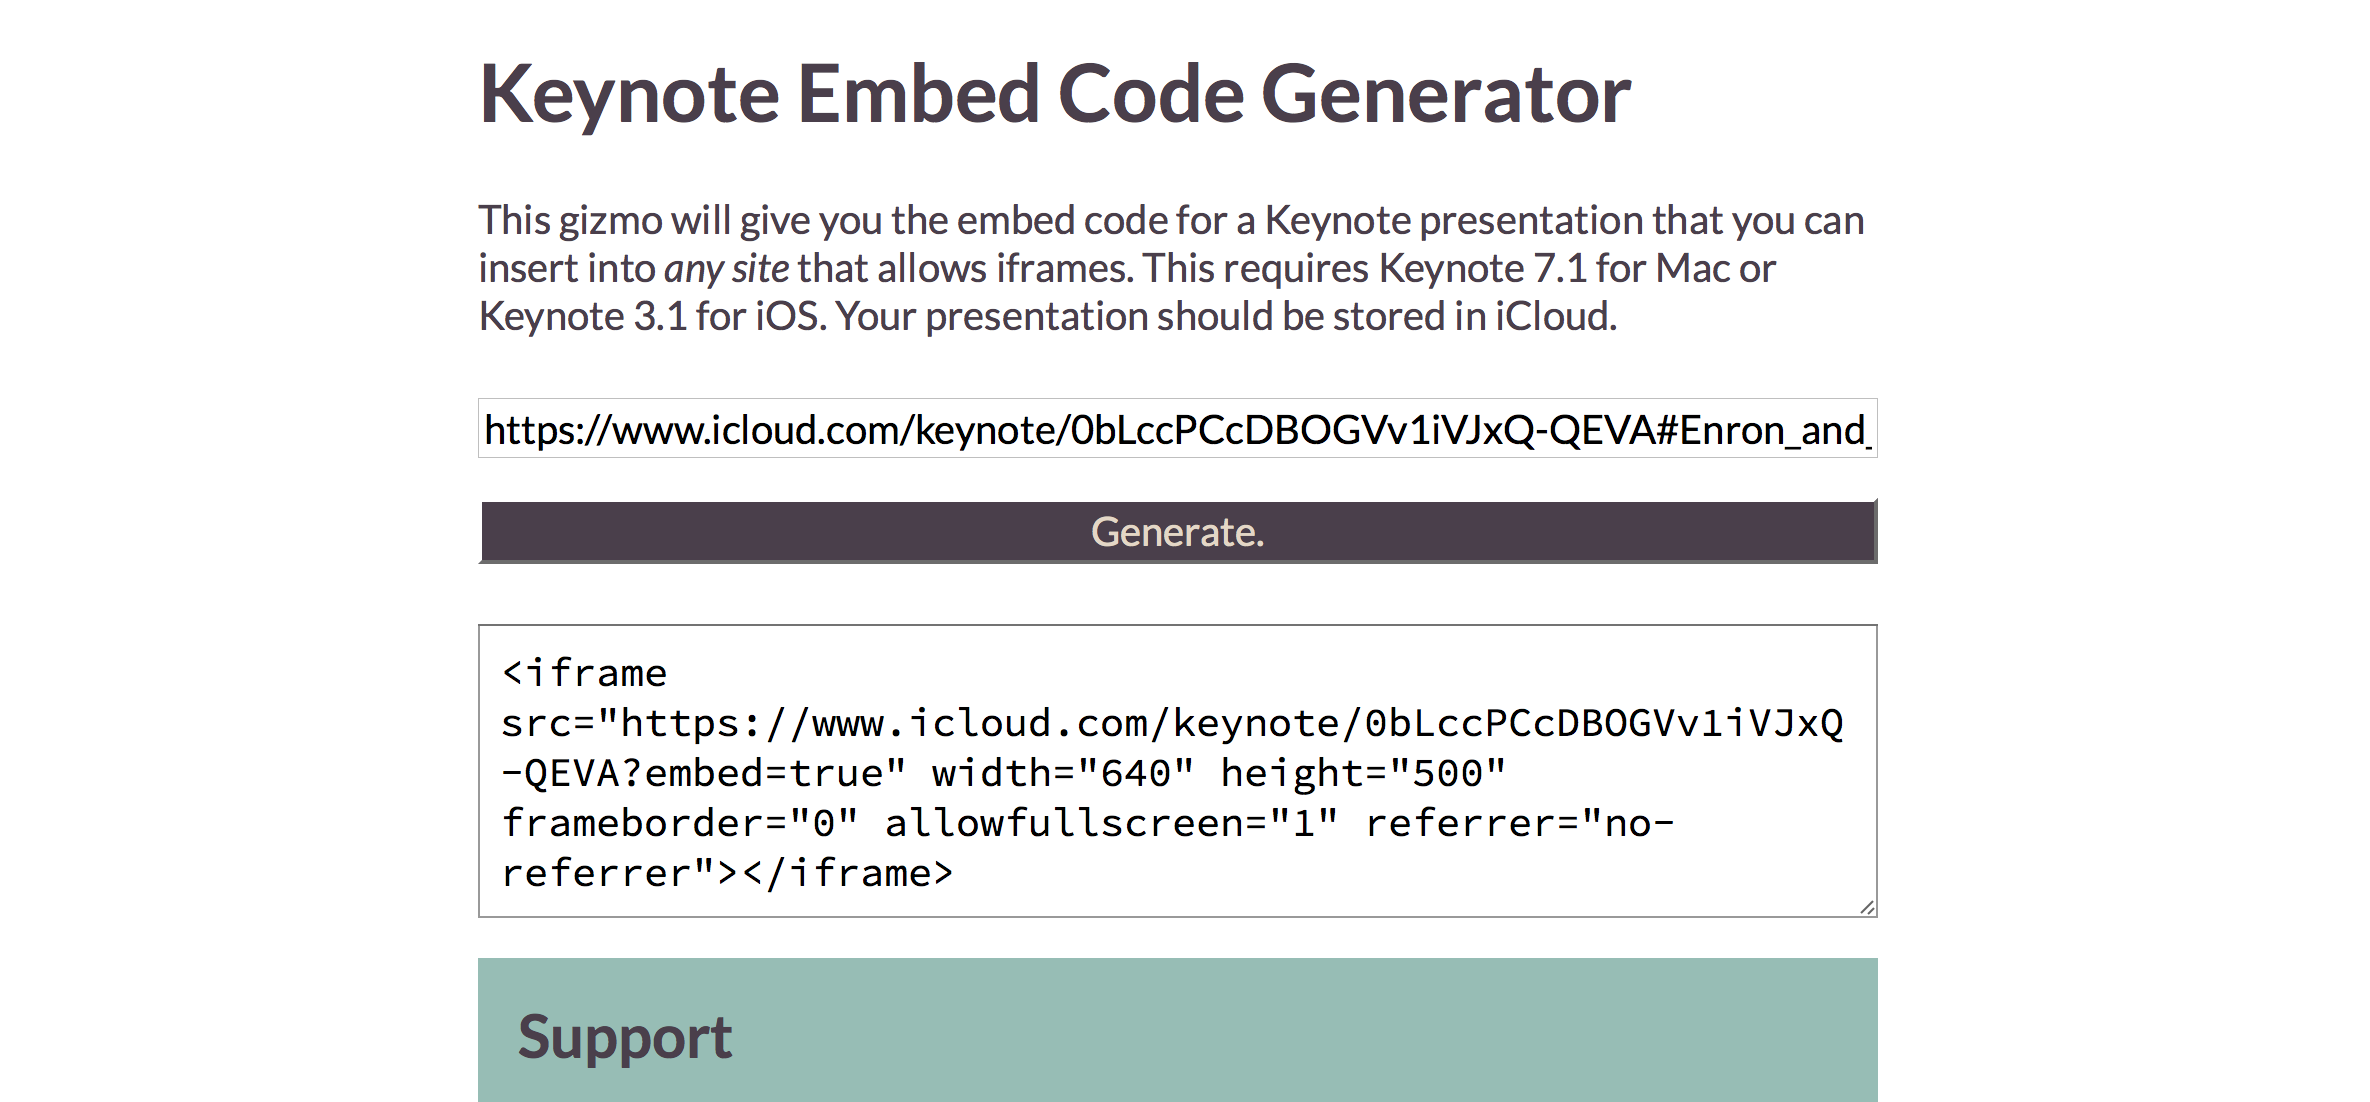 How to embed Keynote presentations in blogs and websites with the